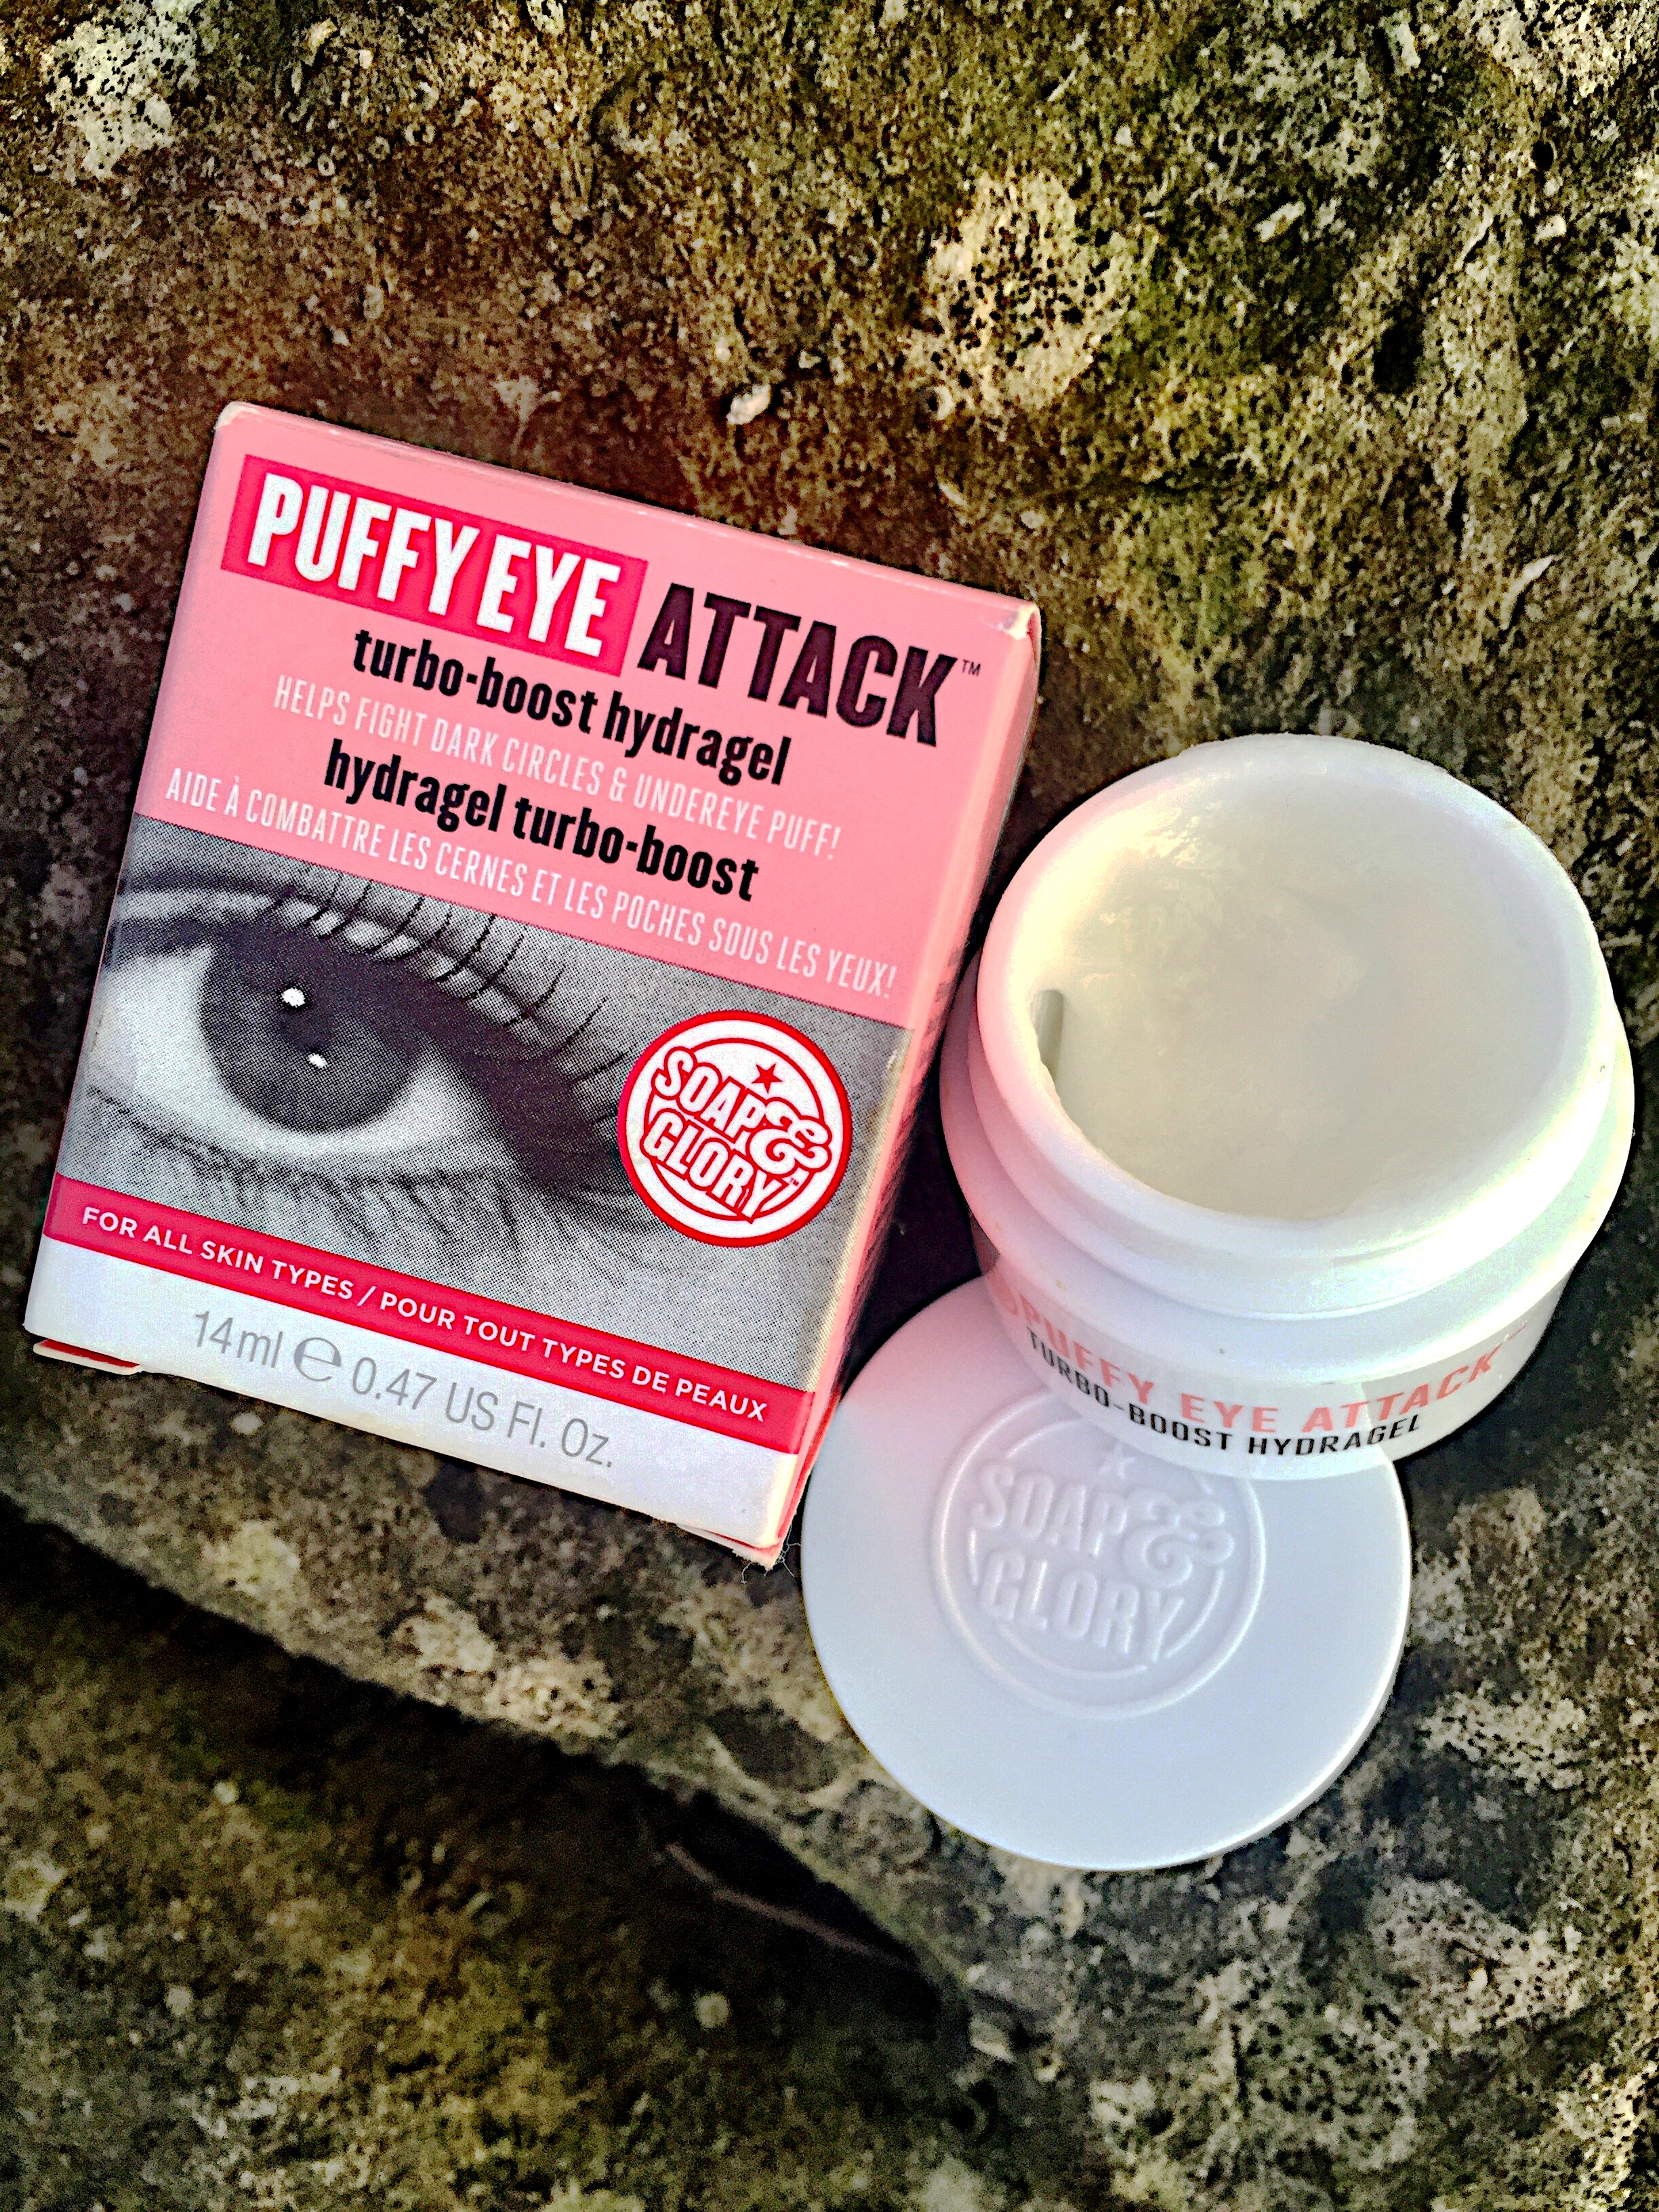 soap-and-glory-puffy-eye-attack-eye-cream-beauty-products-review-packaging-blog-post-gingham-and-sparkle-irish-ireland-dubai-pink-skin-skincare-face